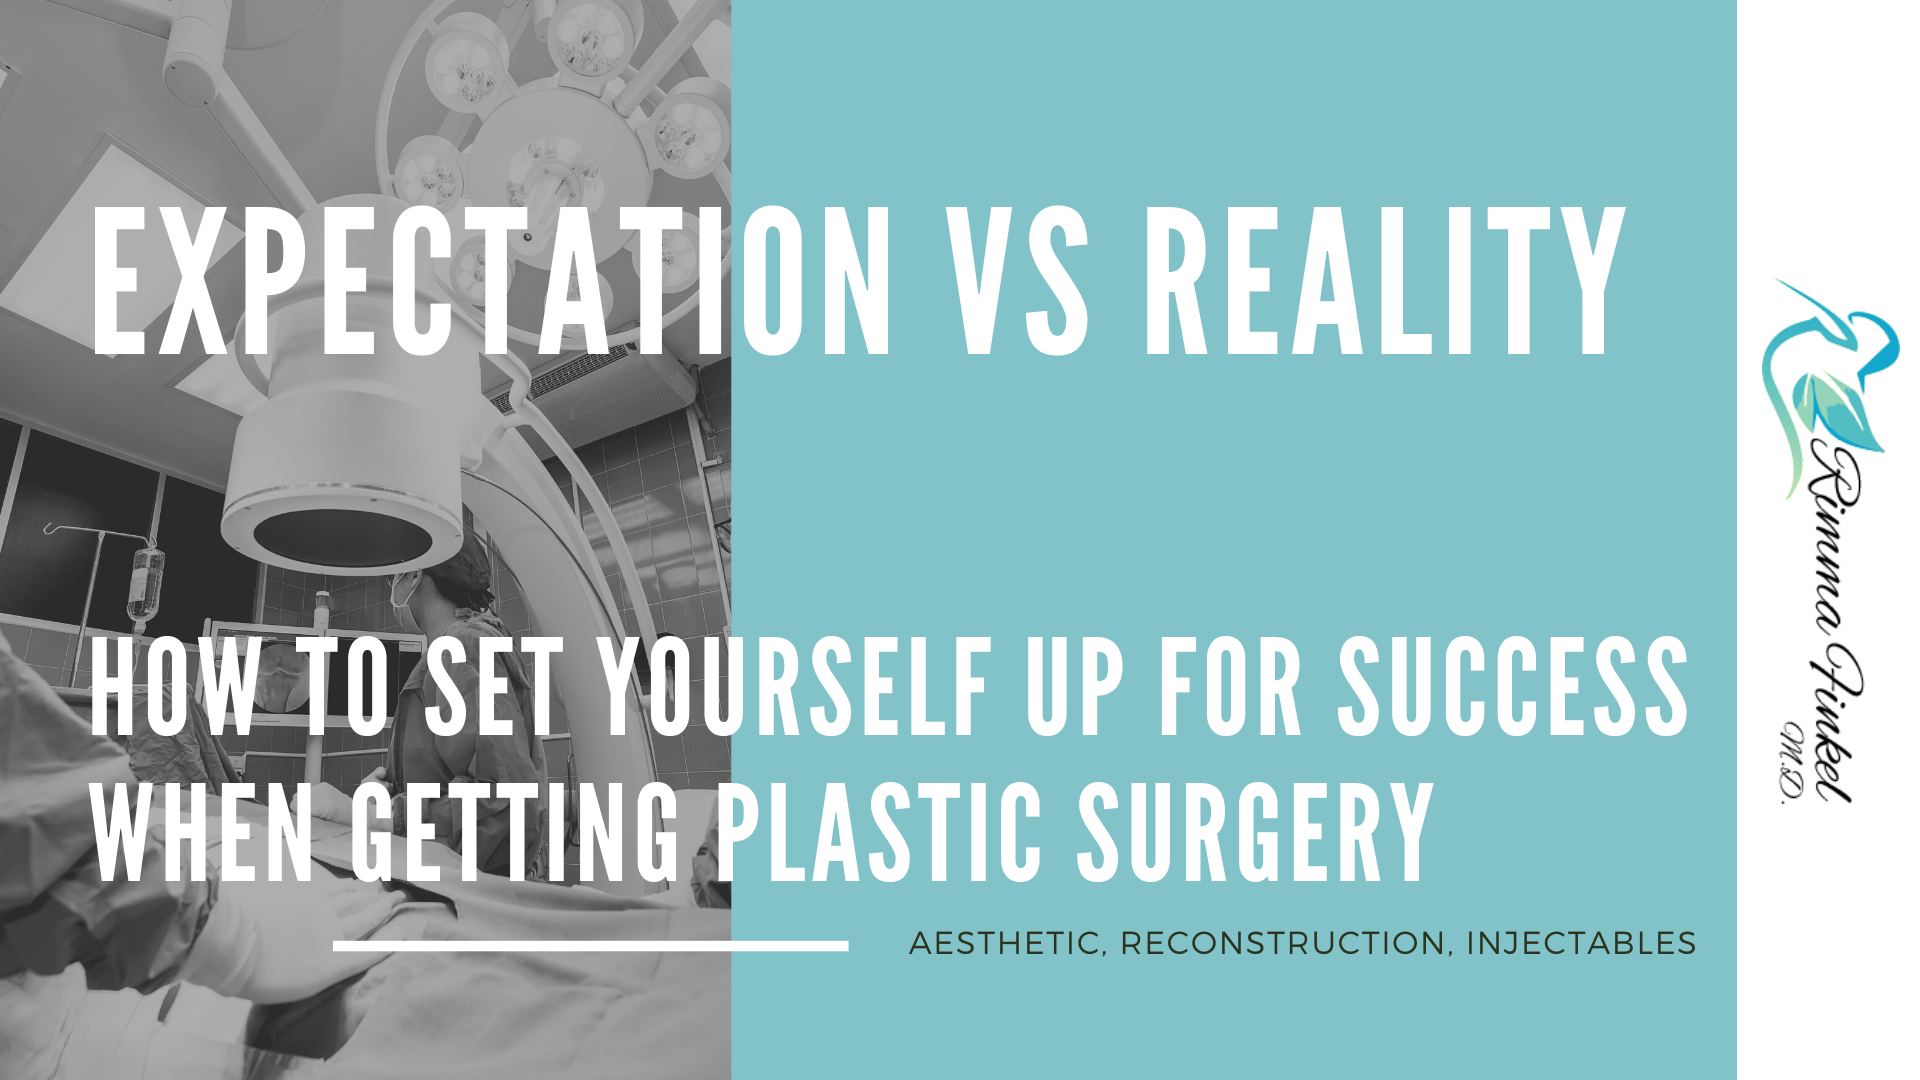 EXPECTATION VS REALITY HOW TO SET YOURSELF UP FOR SUCCESS WHEN GETTING PLASTIC SURGERY